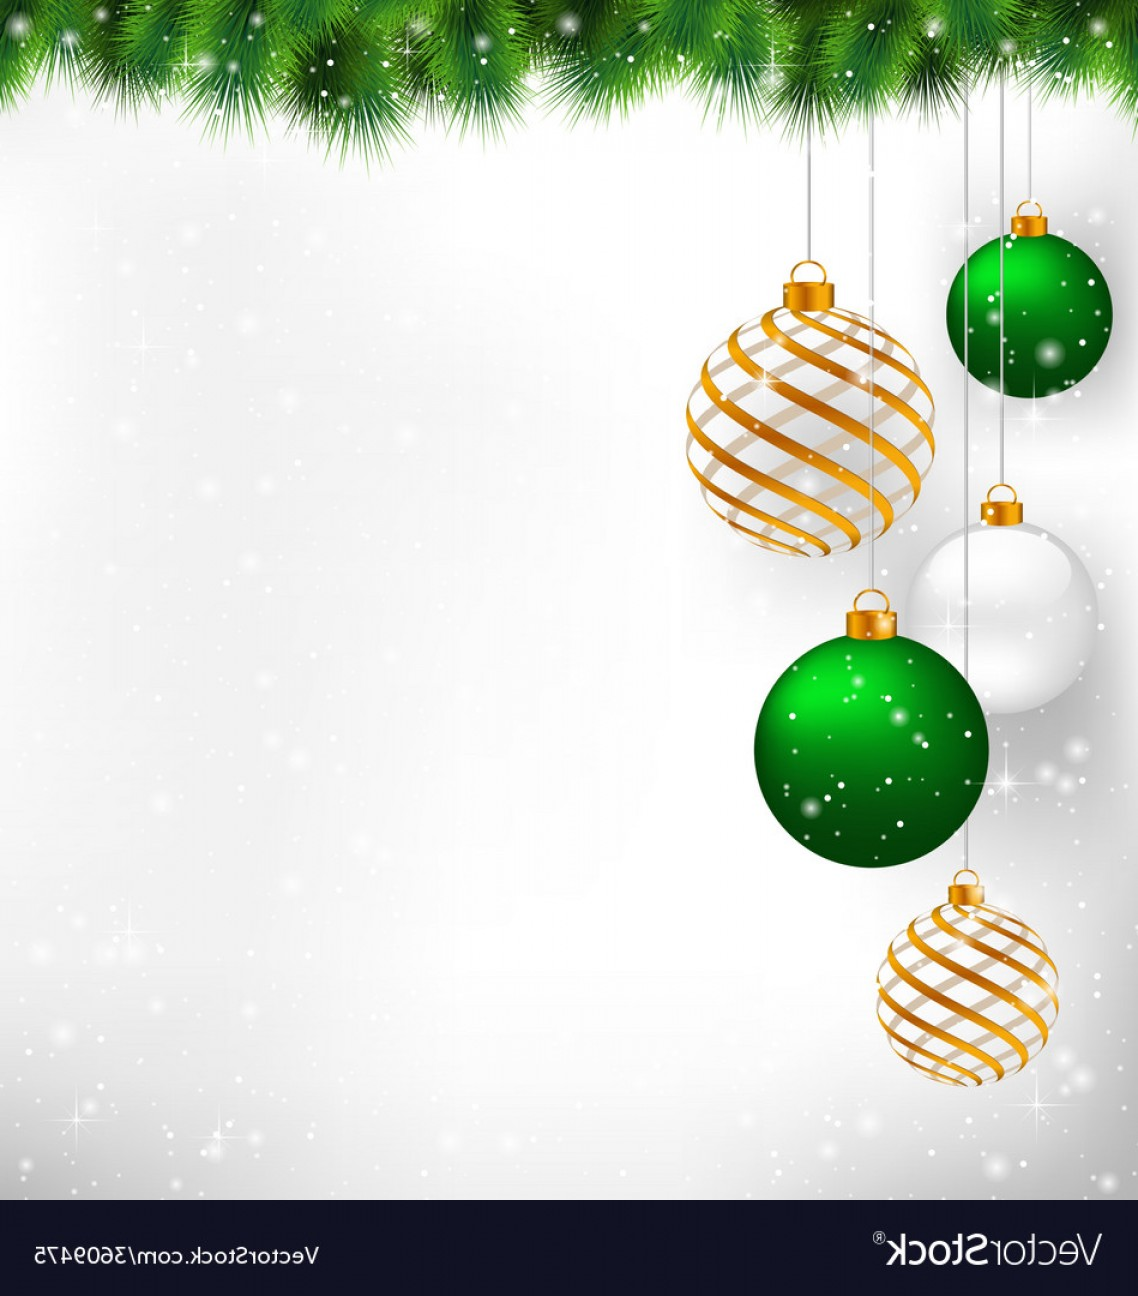 Vector-Based Grayscale Christmas: Golden Spiral And Green Christmas Balls With Pine Vector